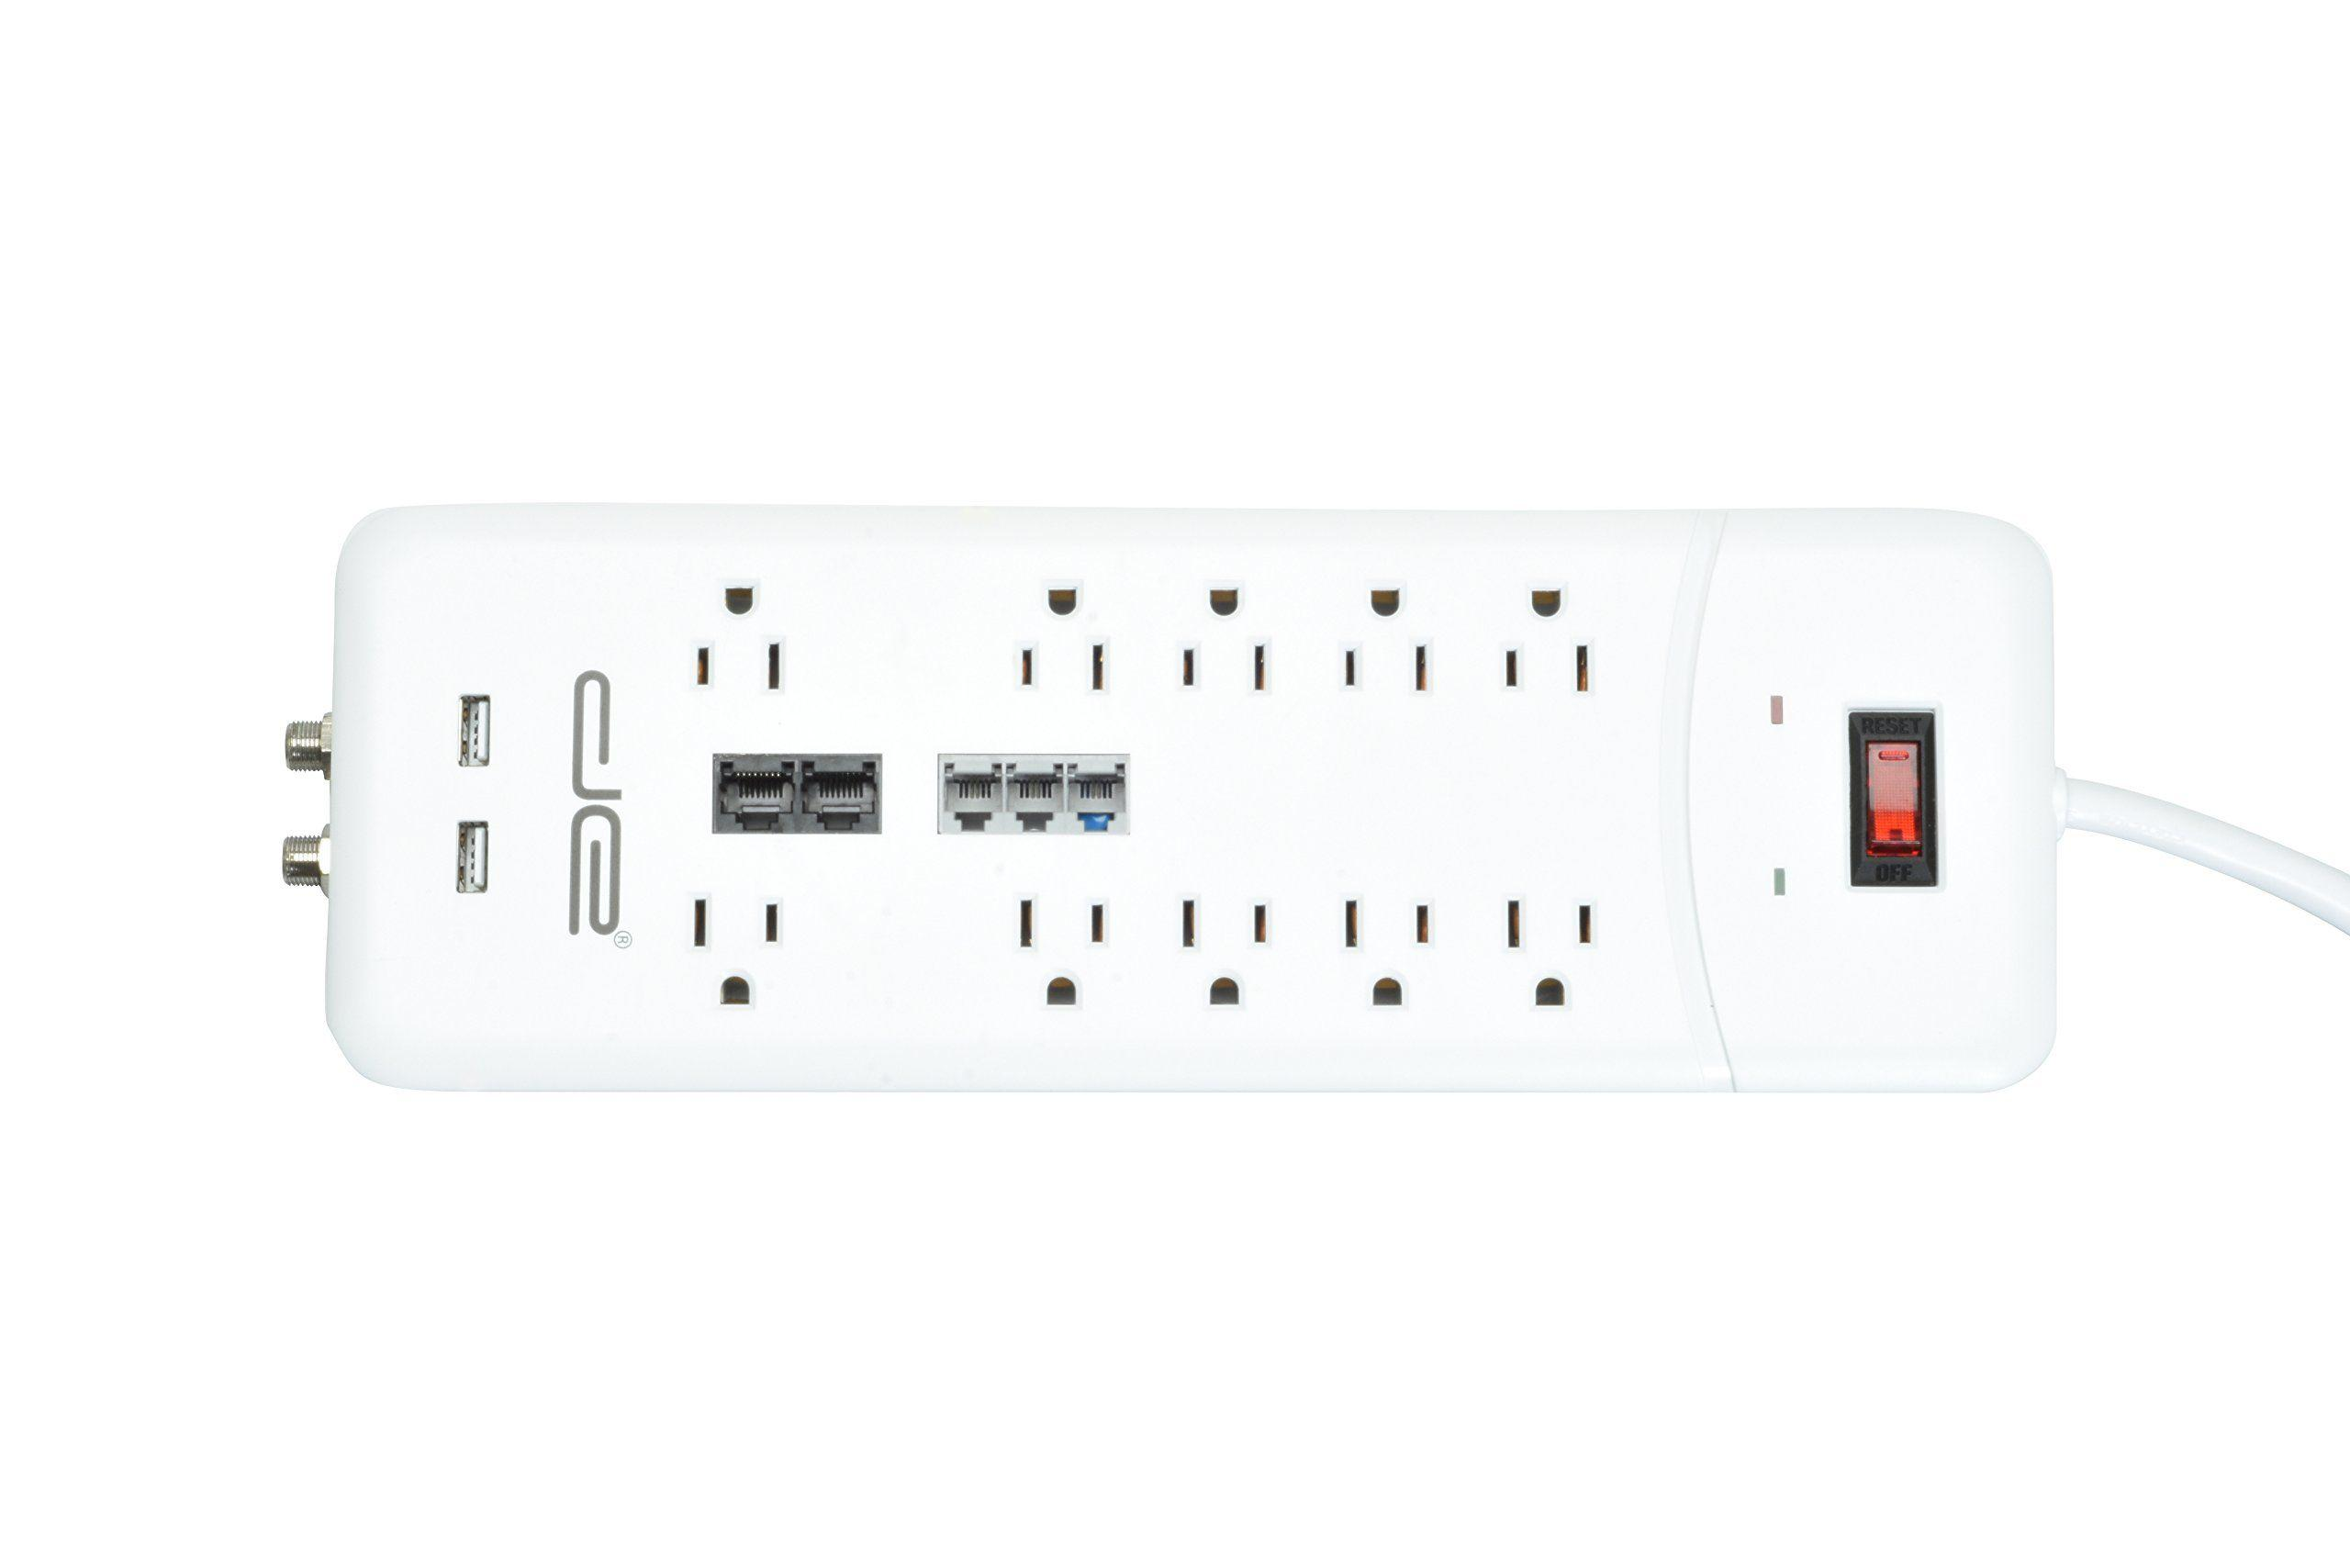 15 foot power strip